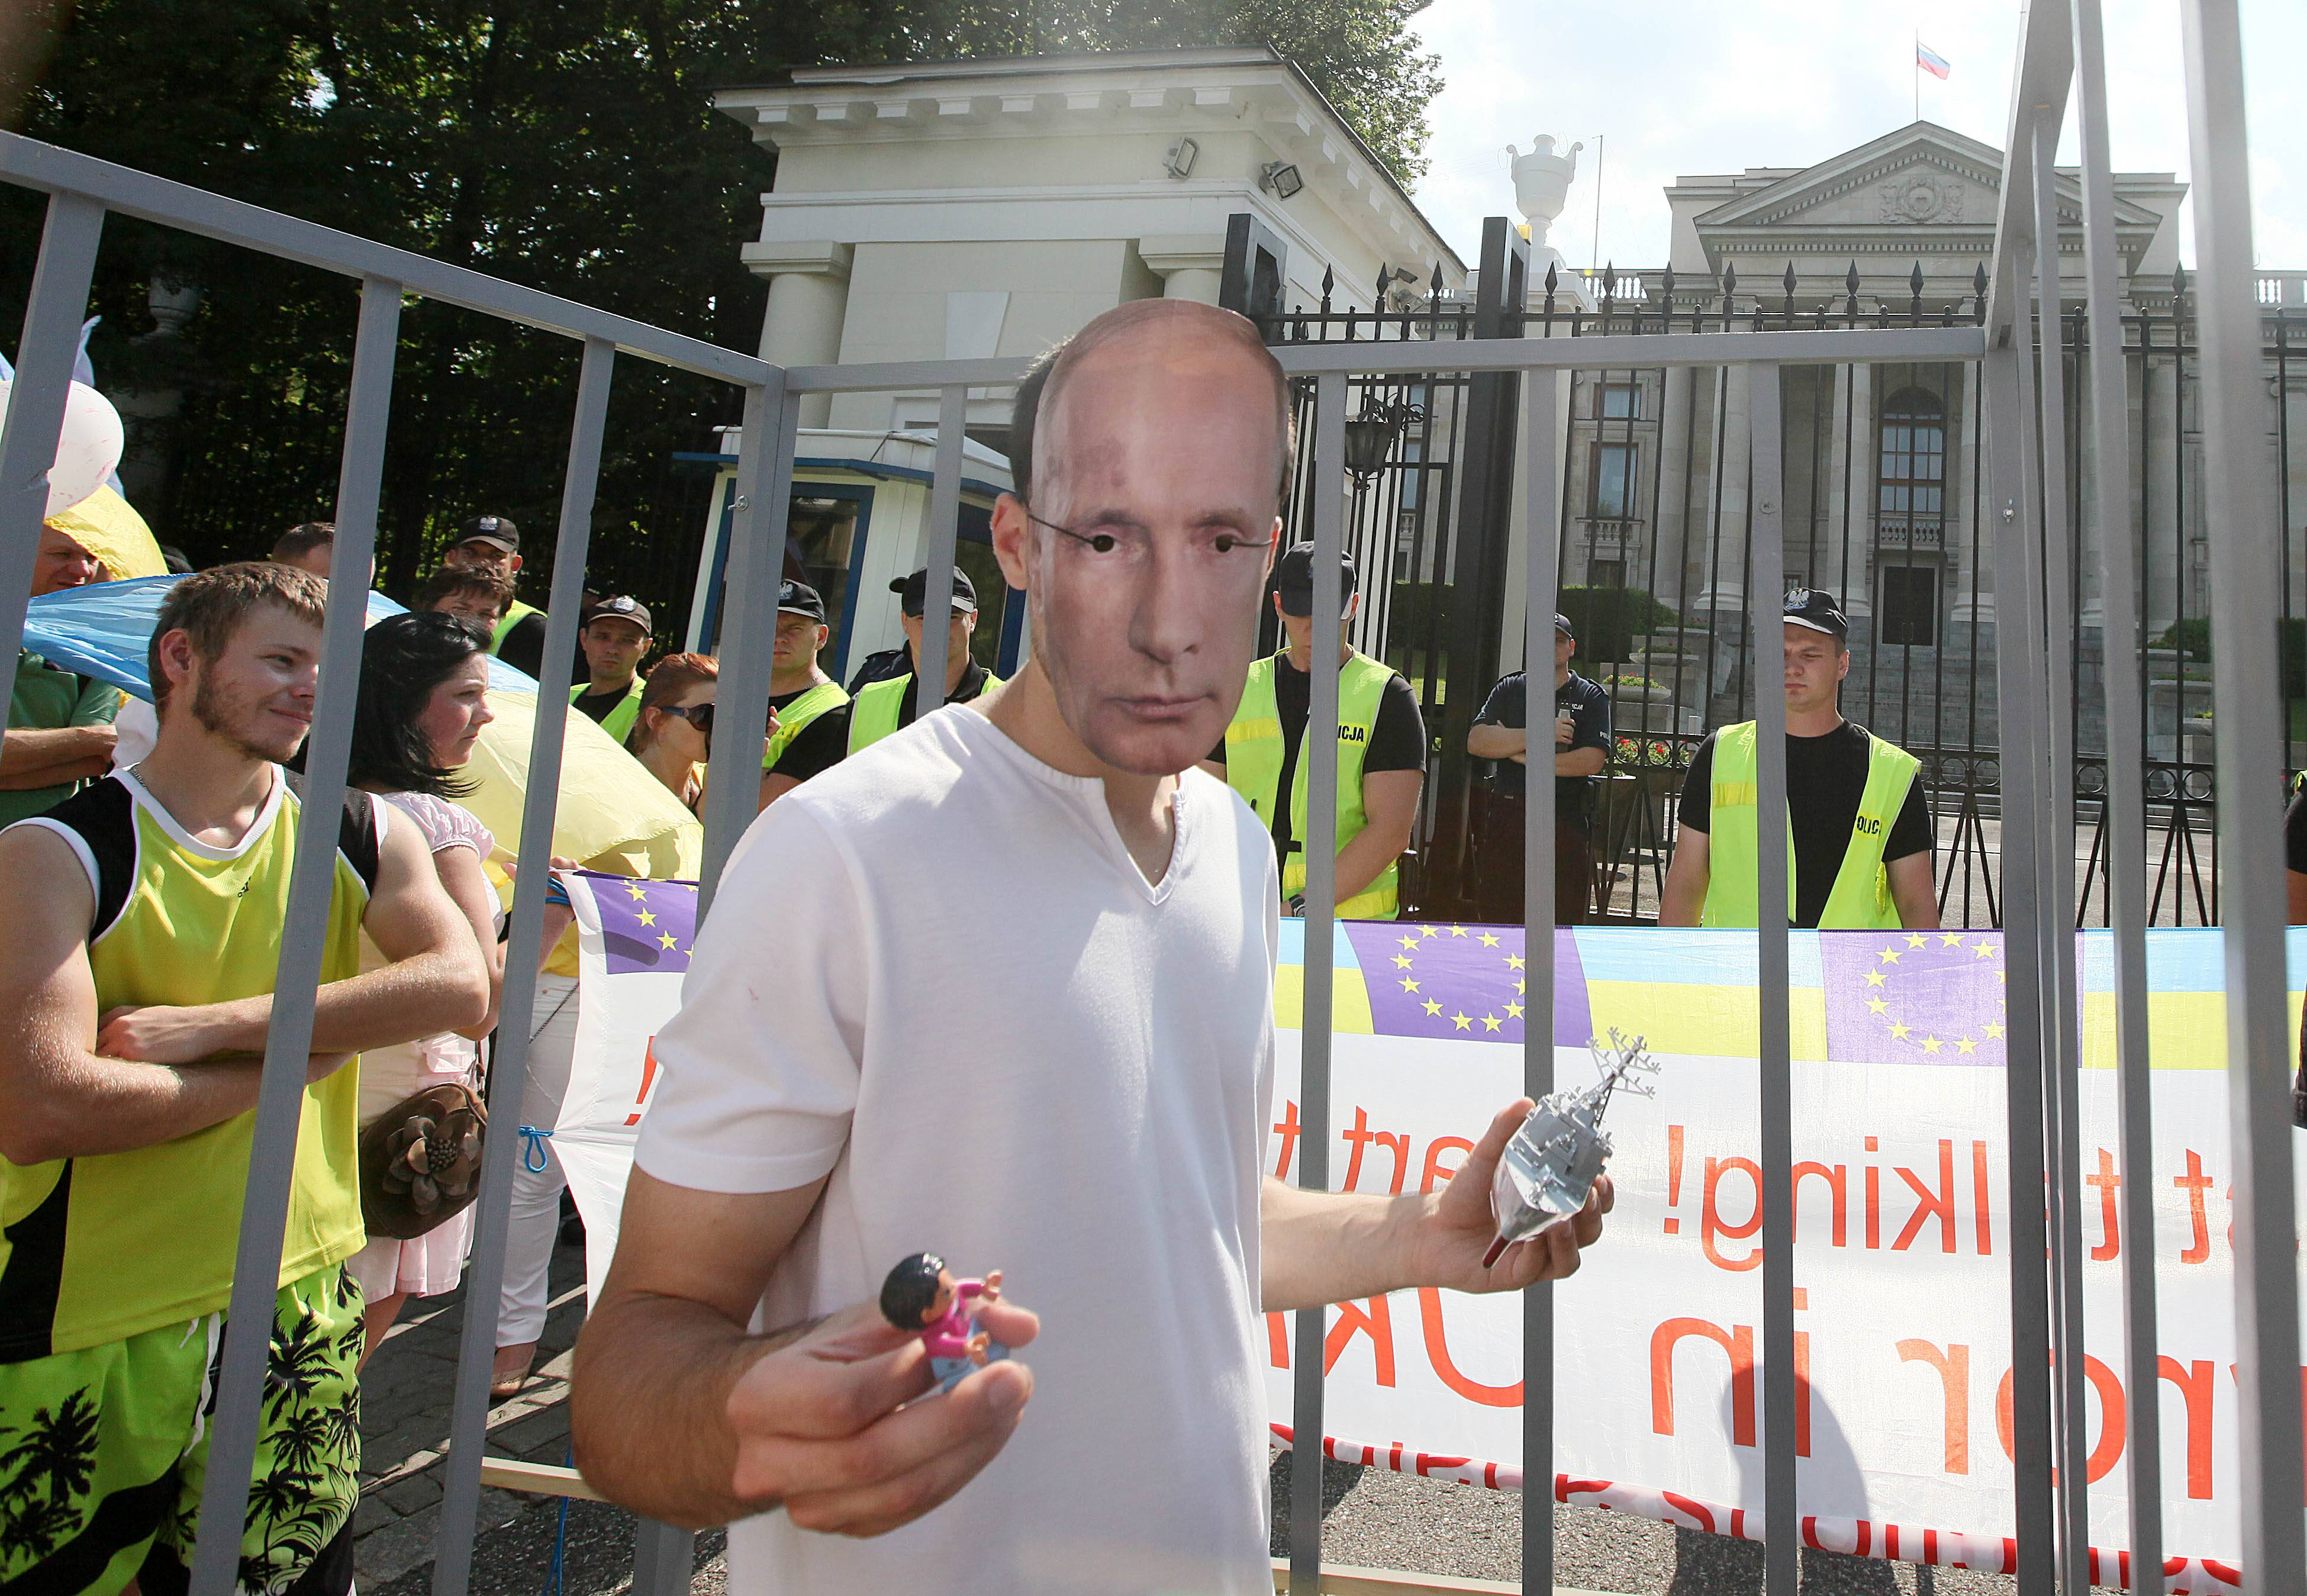 A protester wears a mask depicting Russian President Vladimir Putin , during a a protest against Russia's behavior in the Ukraine conflict, in front of the Russian Embassy in Warsaw, Poland, on Sunday July 27, 2014. .(AP Photo/Czarek Sokolowski)